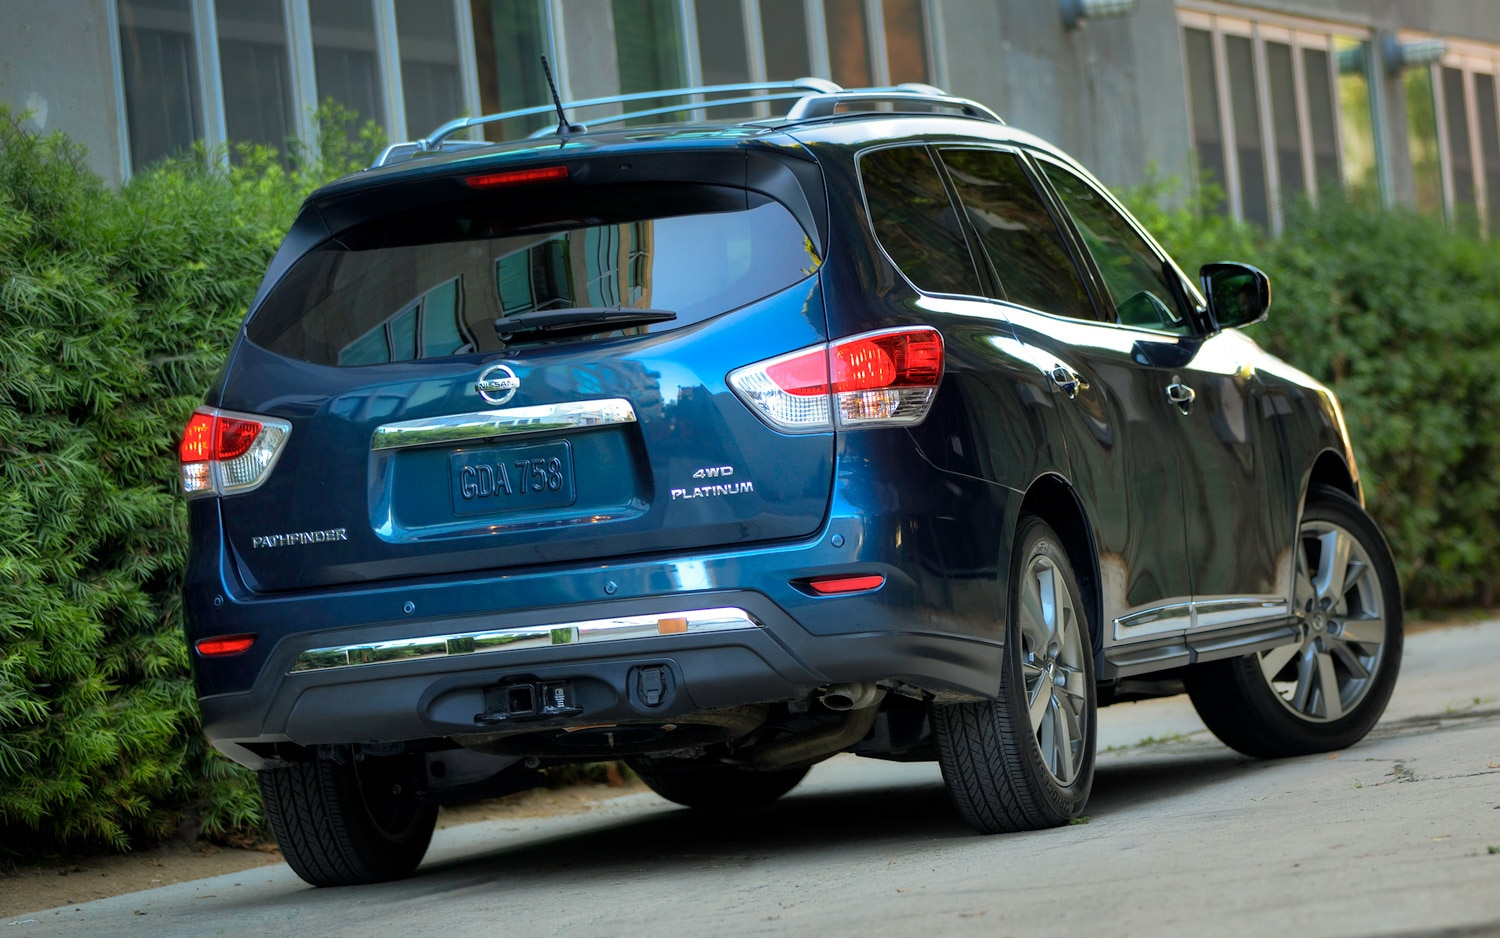 2013 Nissan Pathfinder Rear Closeup